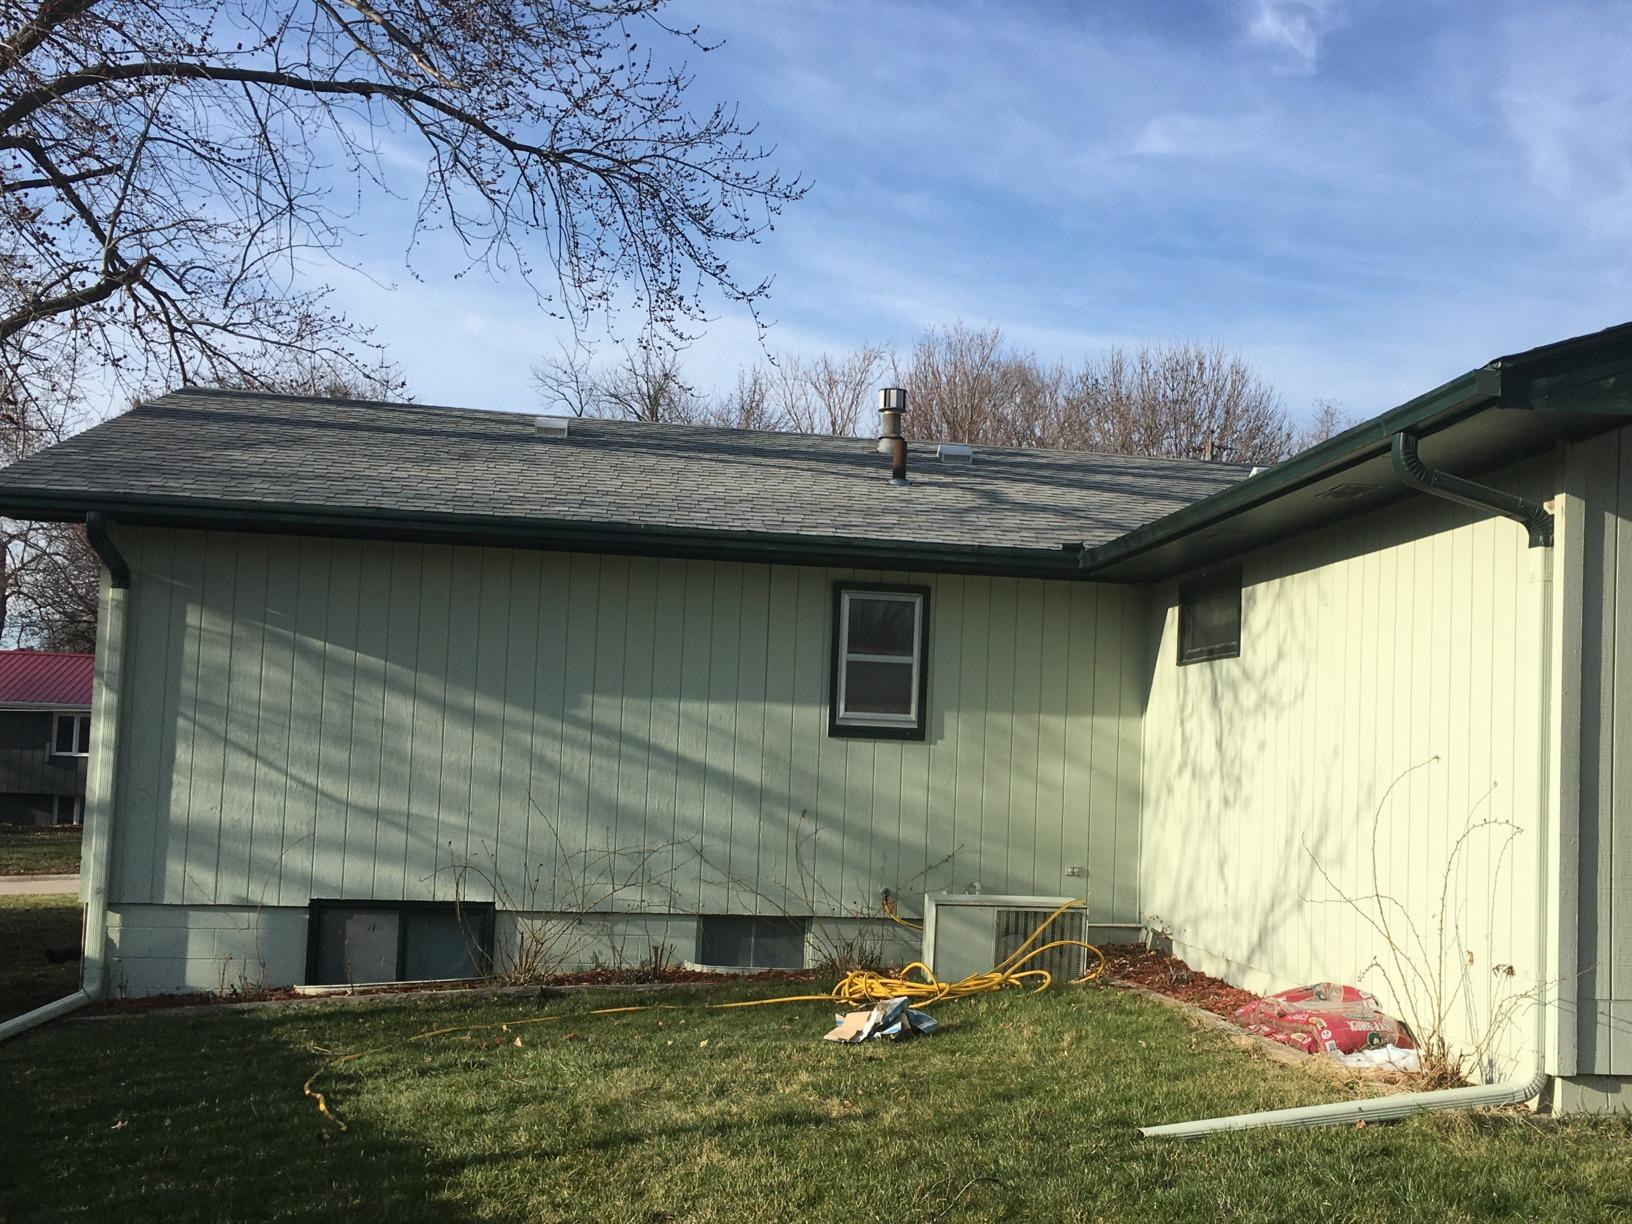 White LeafGuard Gutters Installed on back of home in Shenandoah, IA - Before Photo